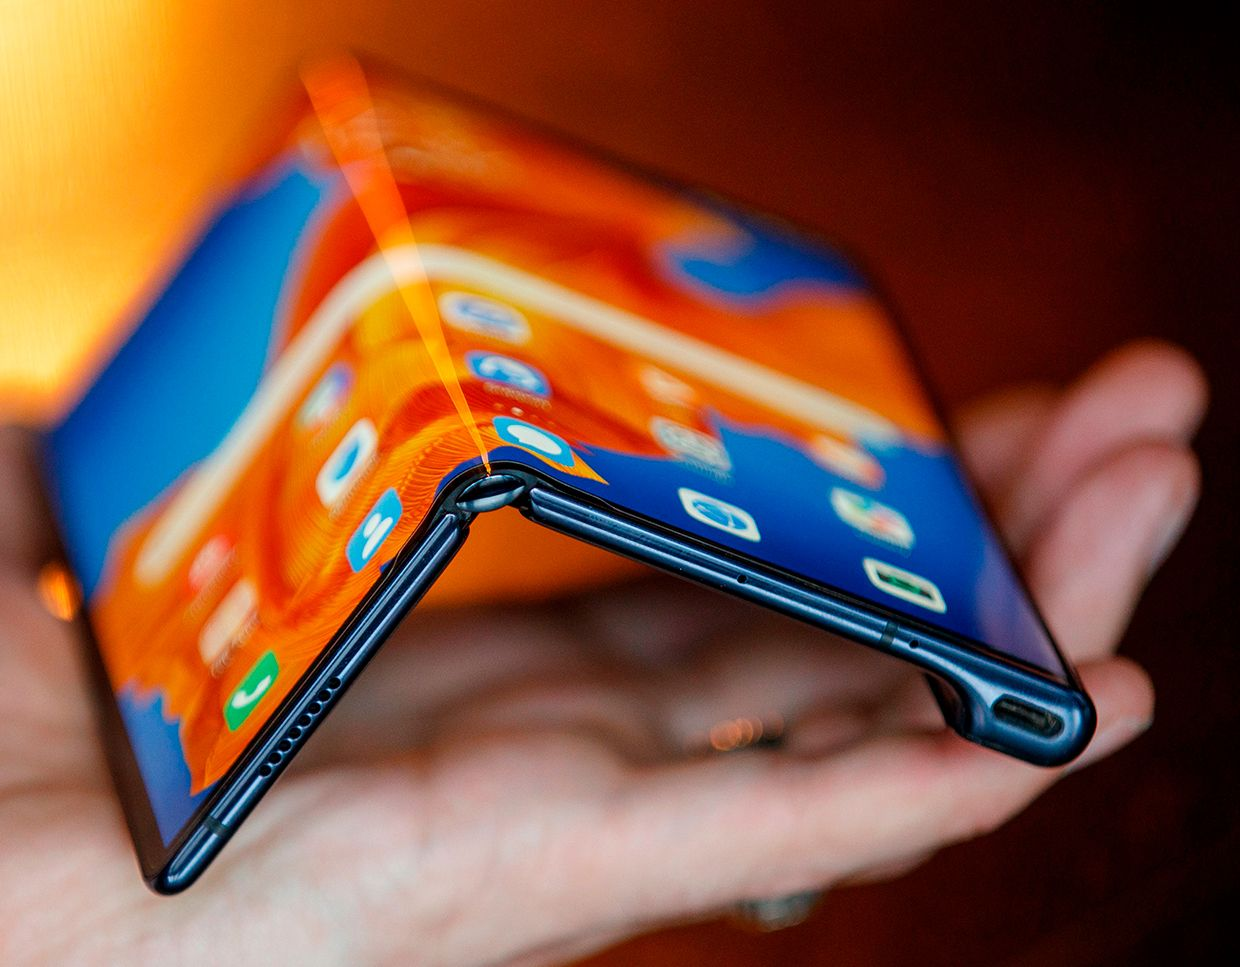 Image displaying the flexible features of the Huawei Mate Xs smartphone.